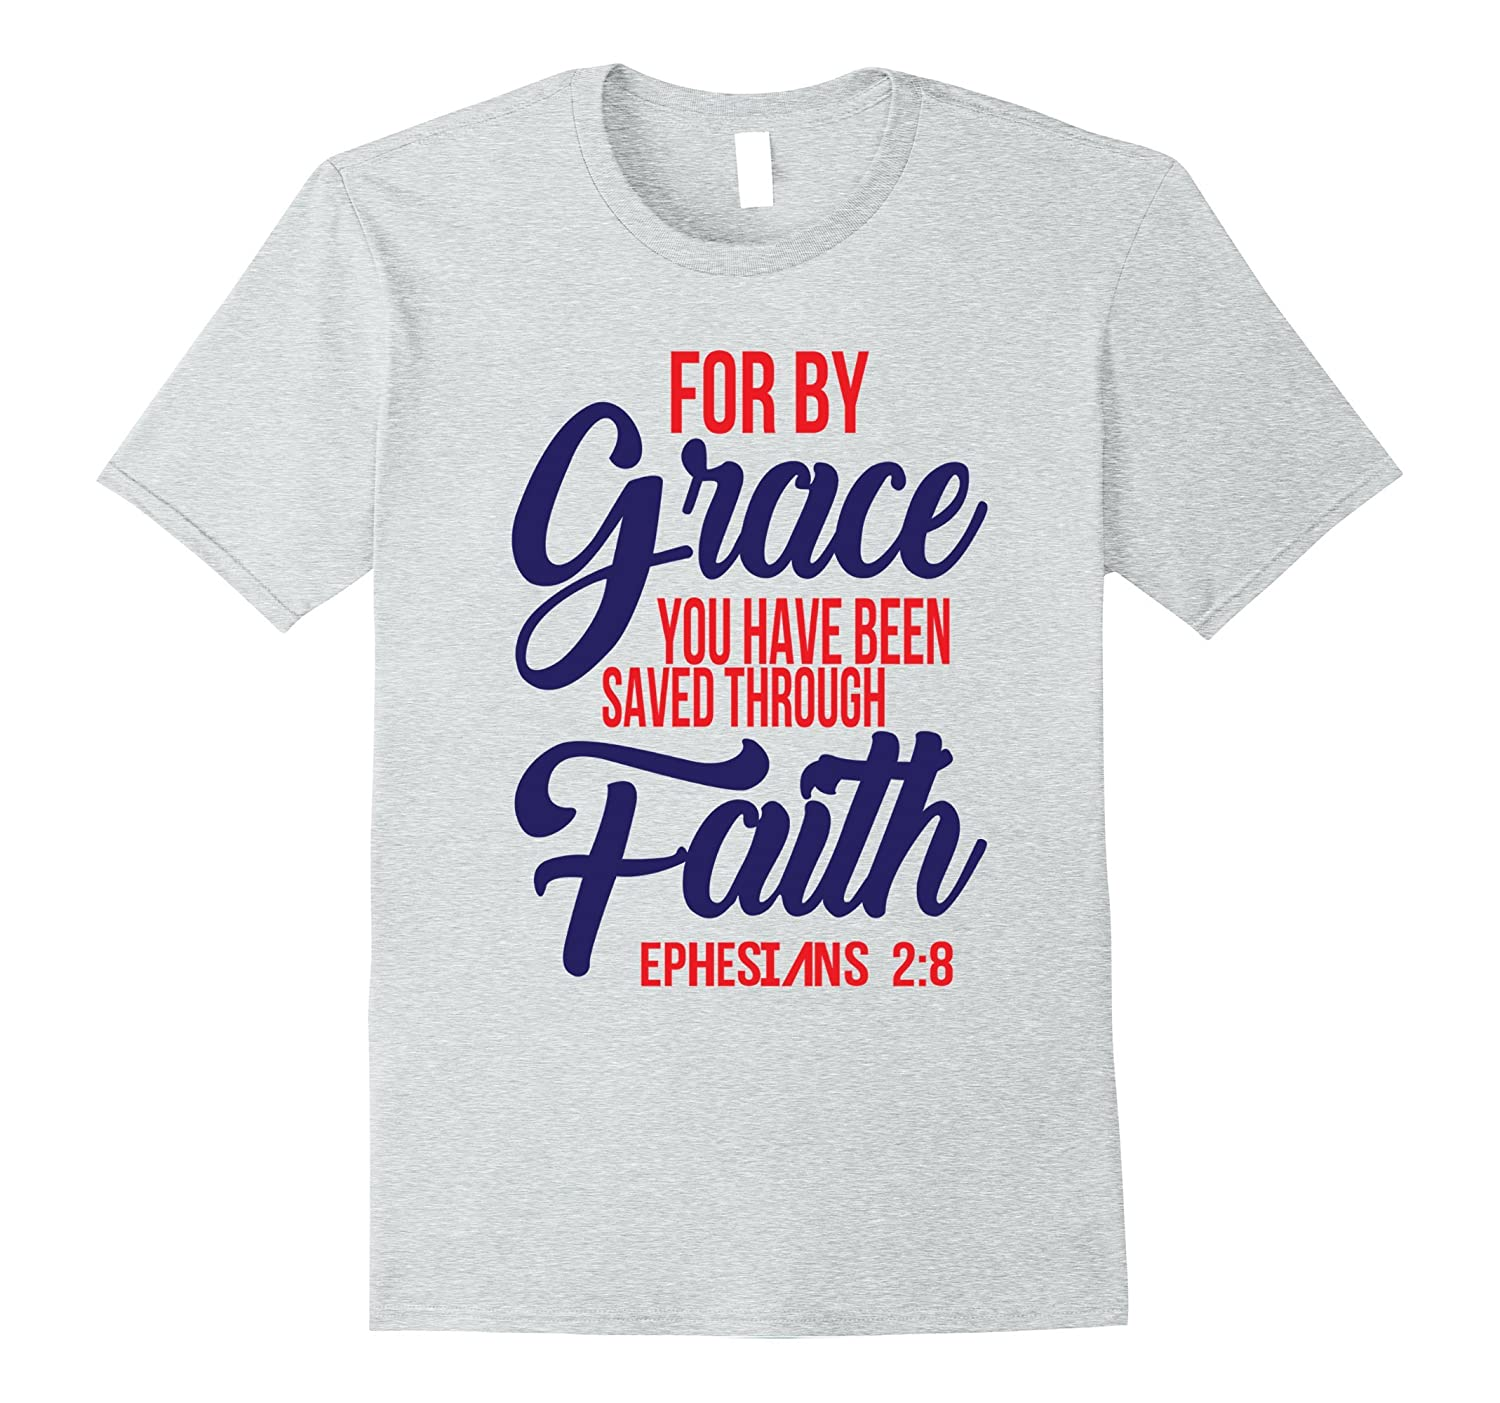 97a965c3f Godly Christian T-Shirt For By Grace You Have Been Saved-PL – Polozatee